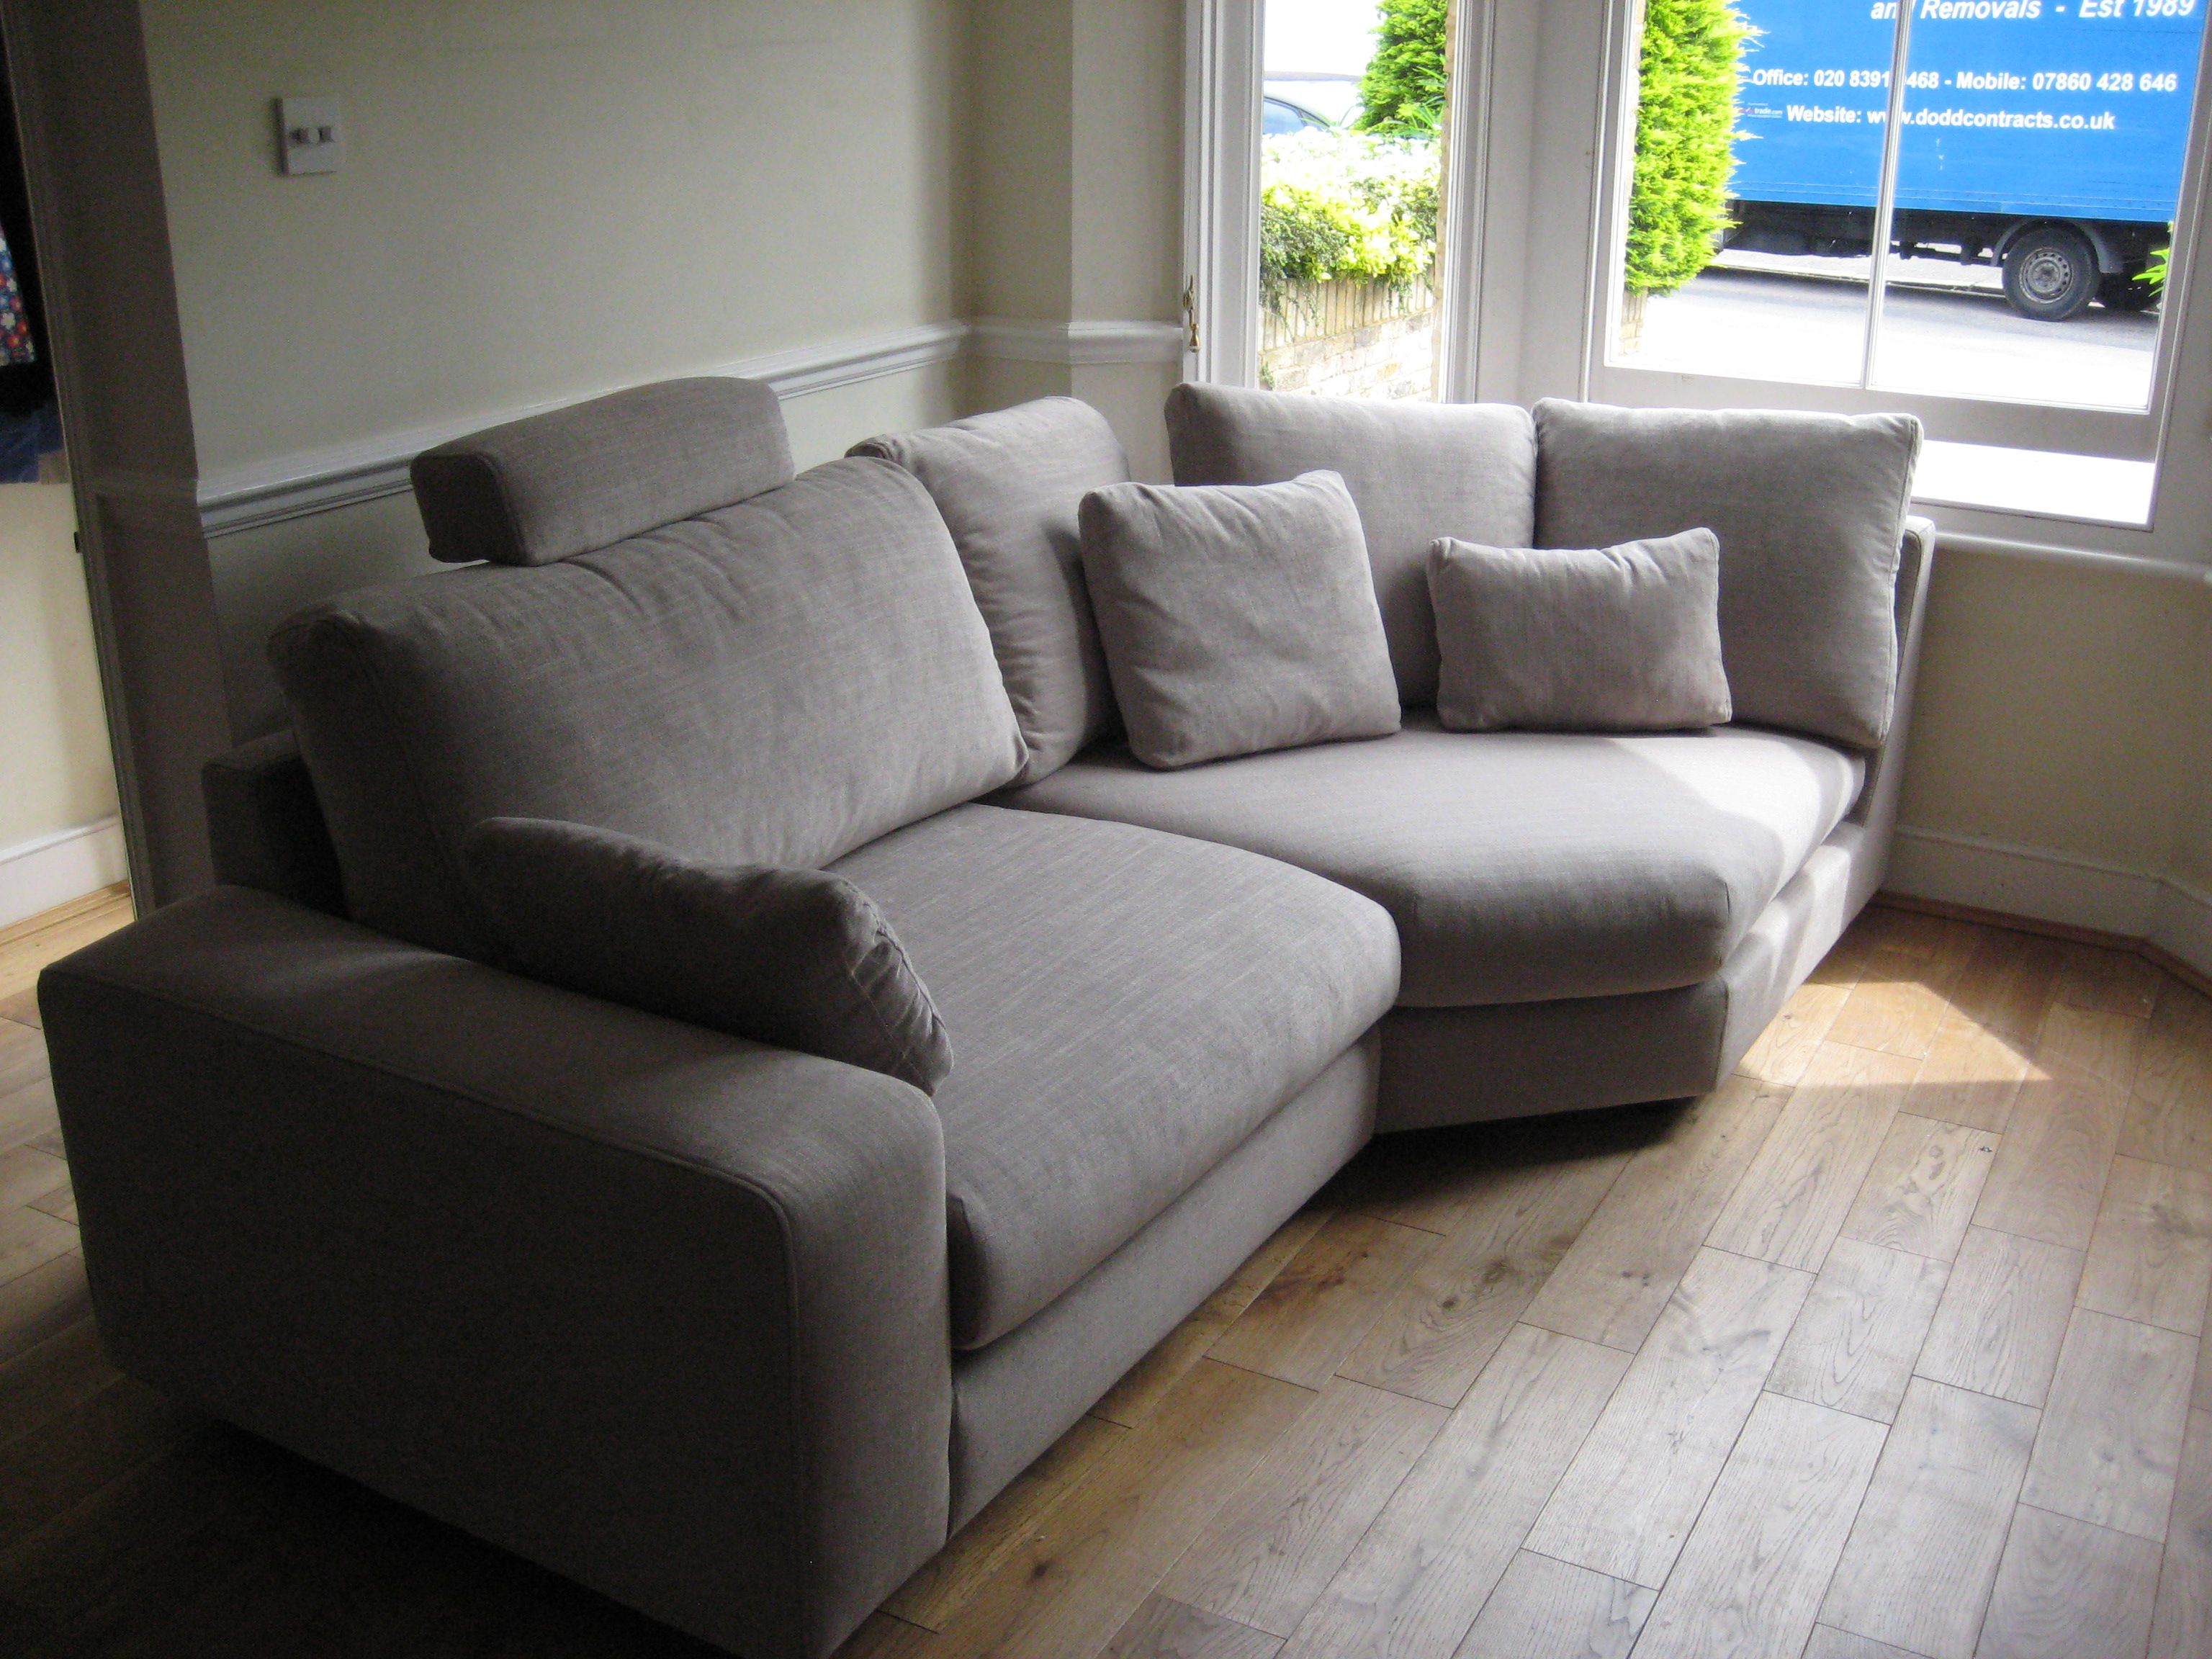 100 cm wide sofa bed modern vintage a small room with bay window takes large section